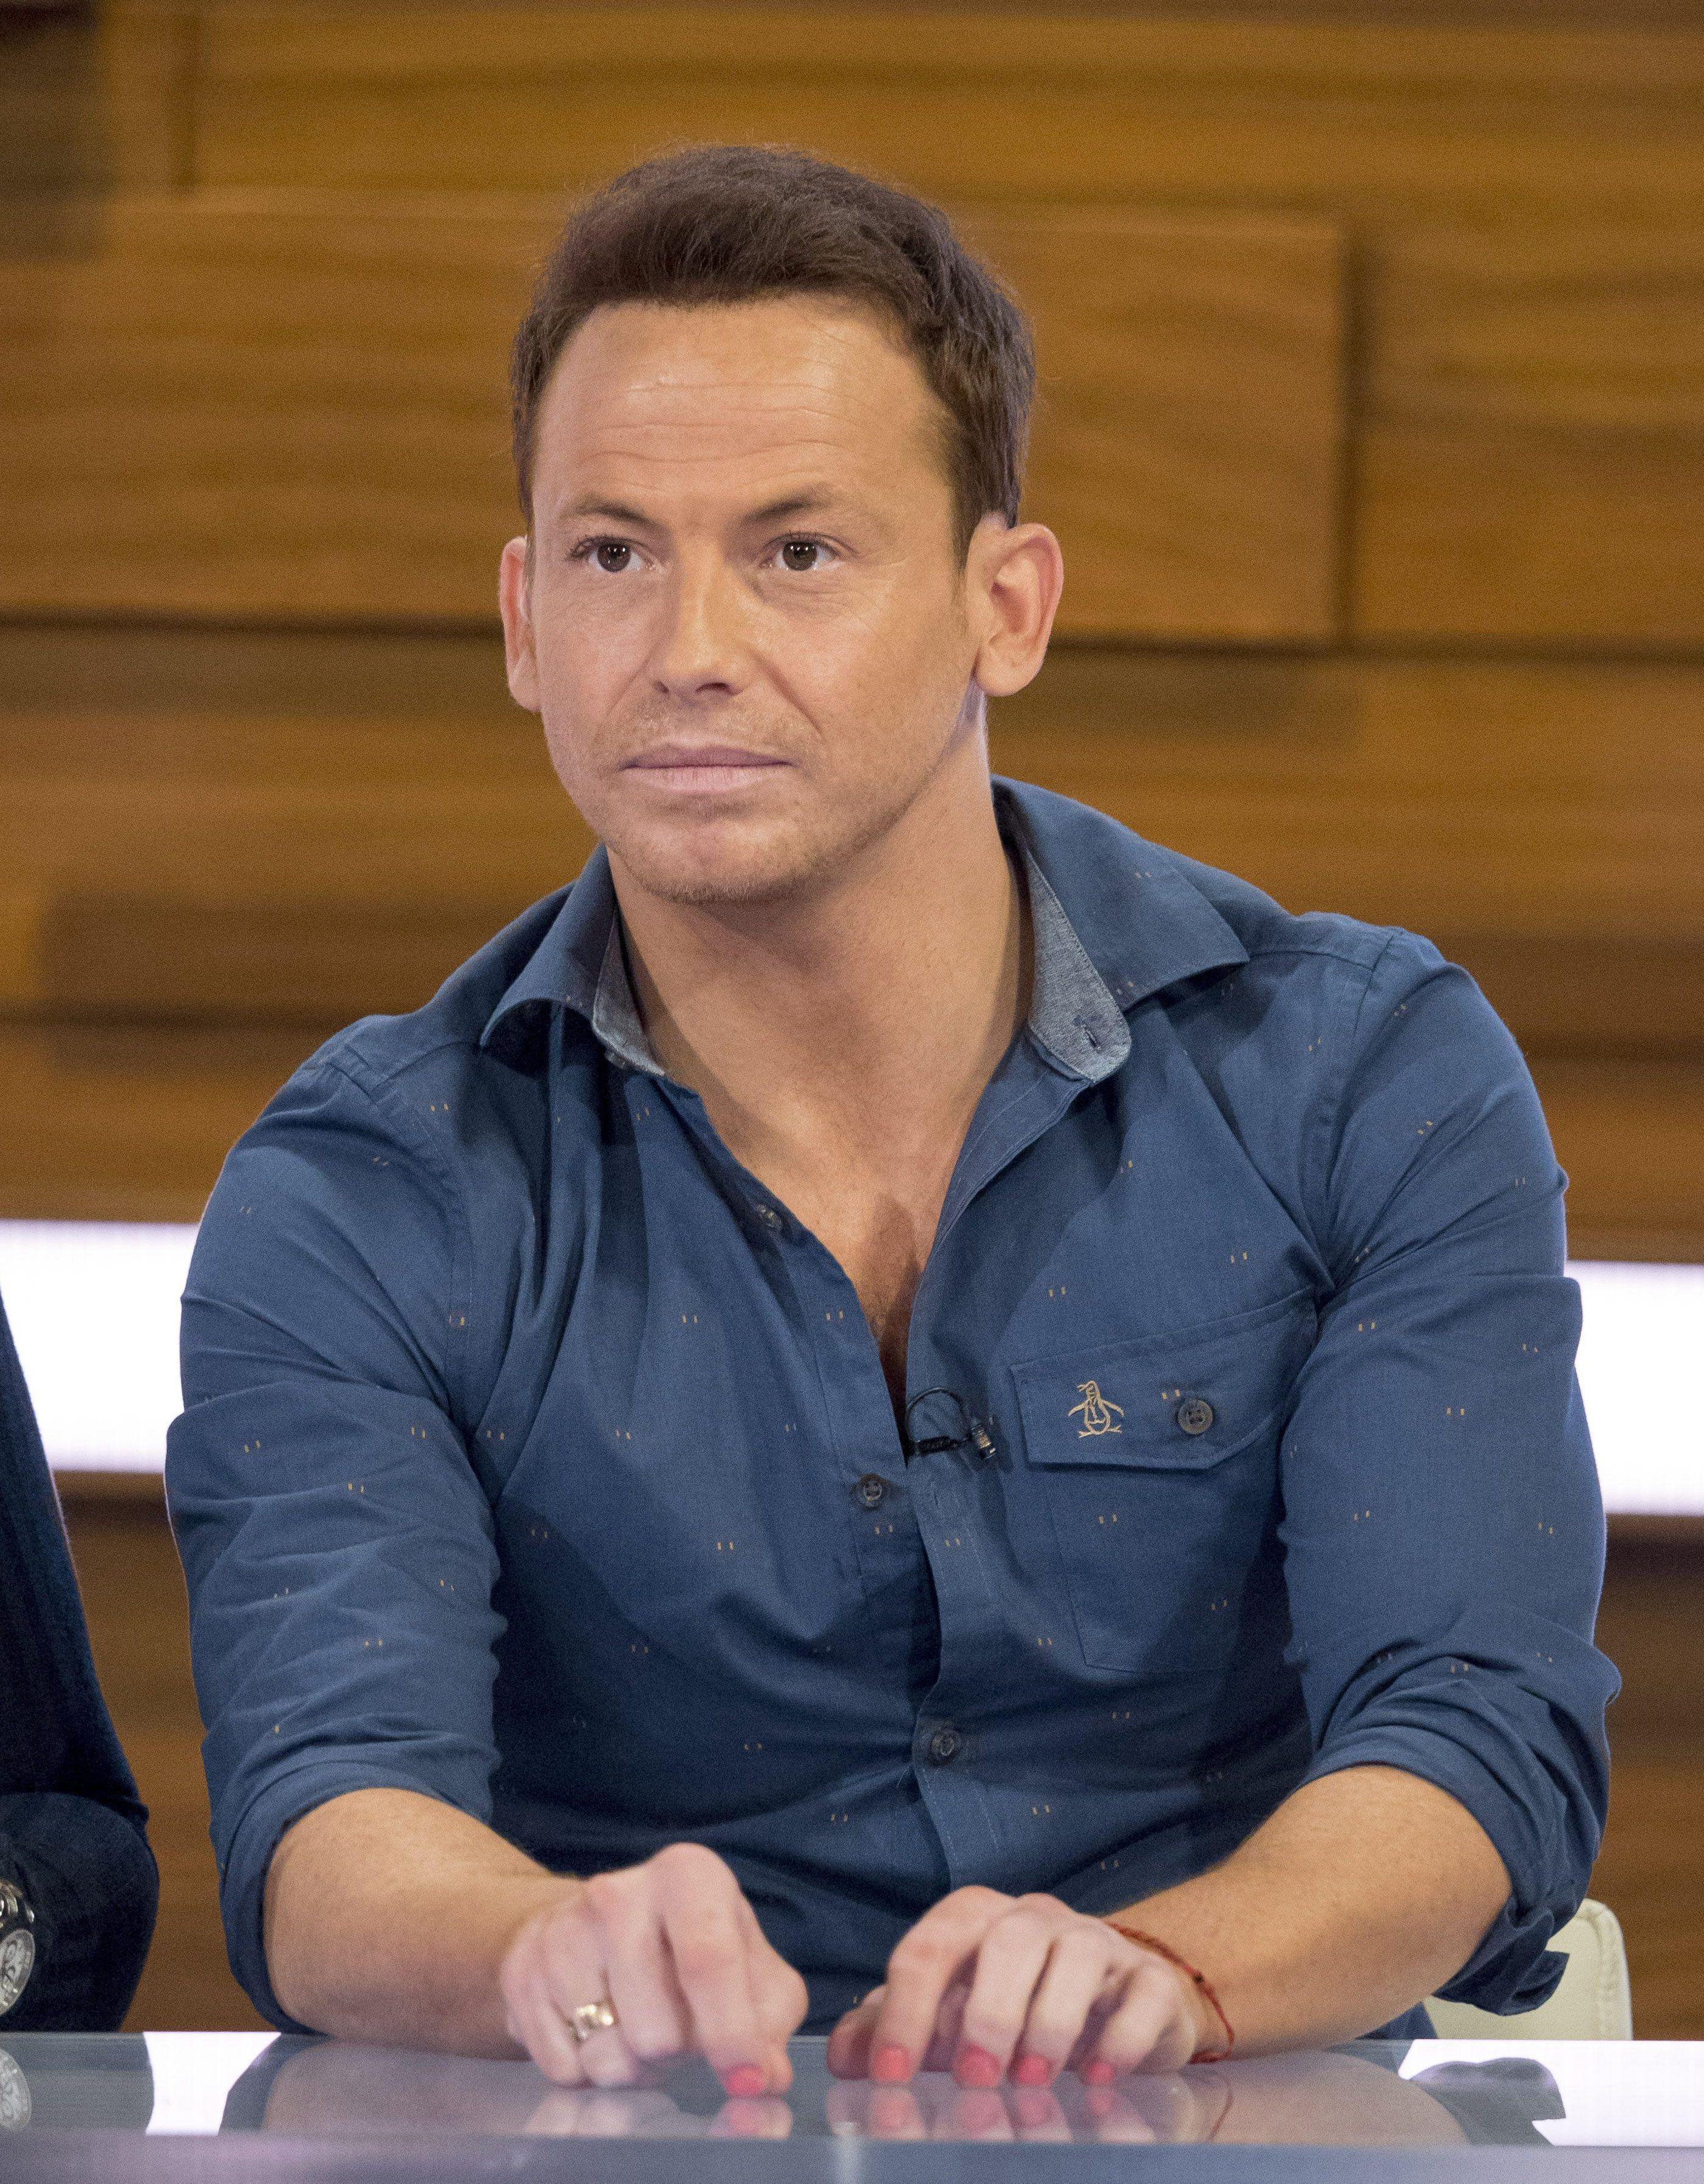 Who is Joe Swash? Stacey Solomon's boyfriend, Extra Camp presenter and I'm A Celebrity 2008 winner